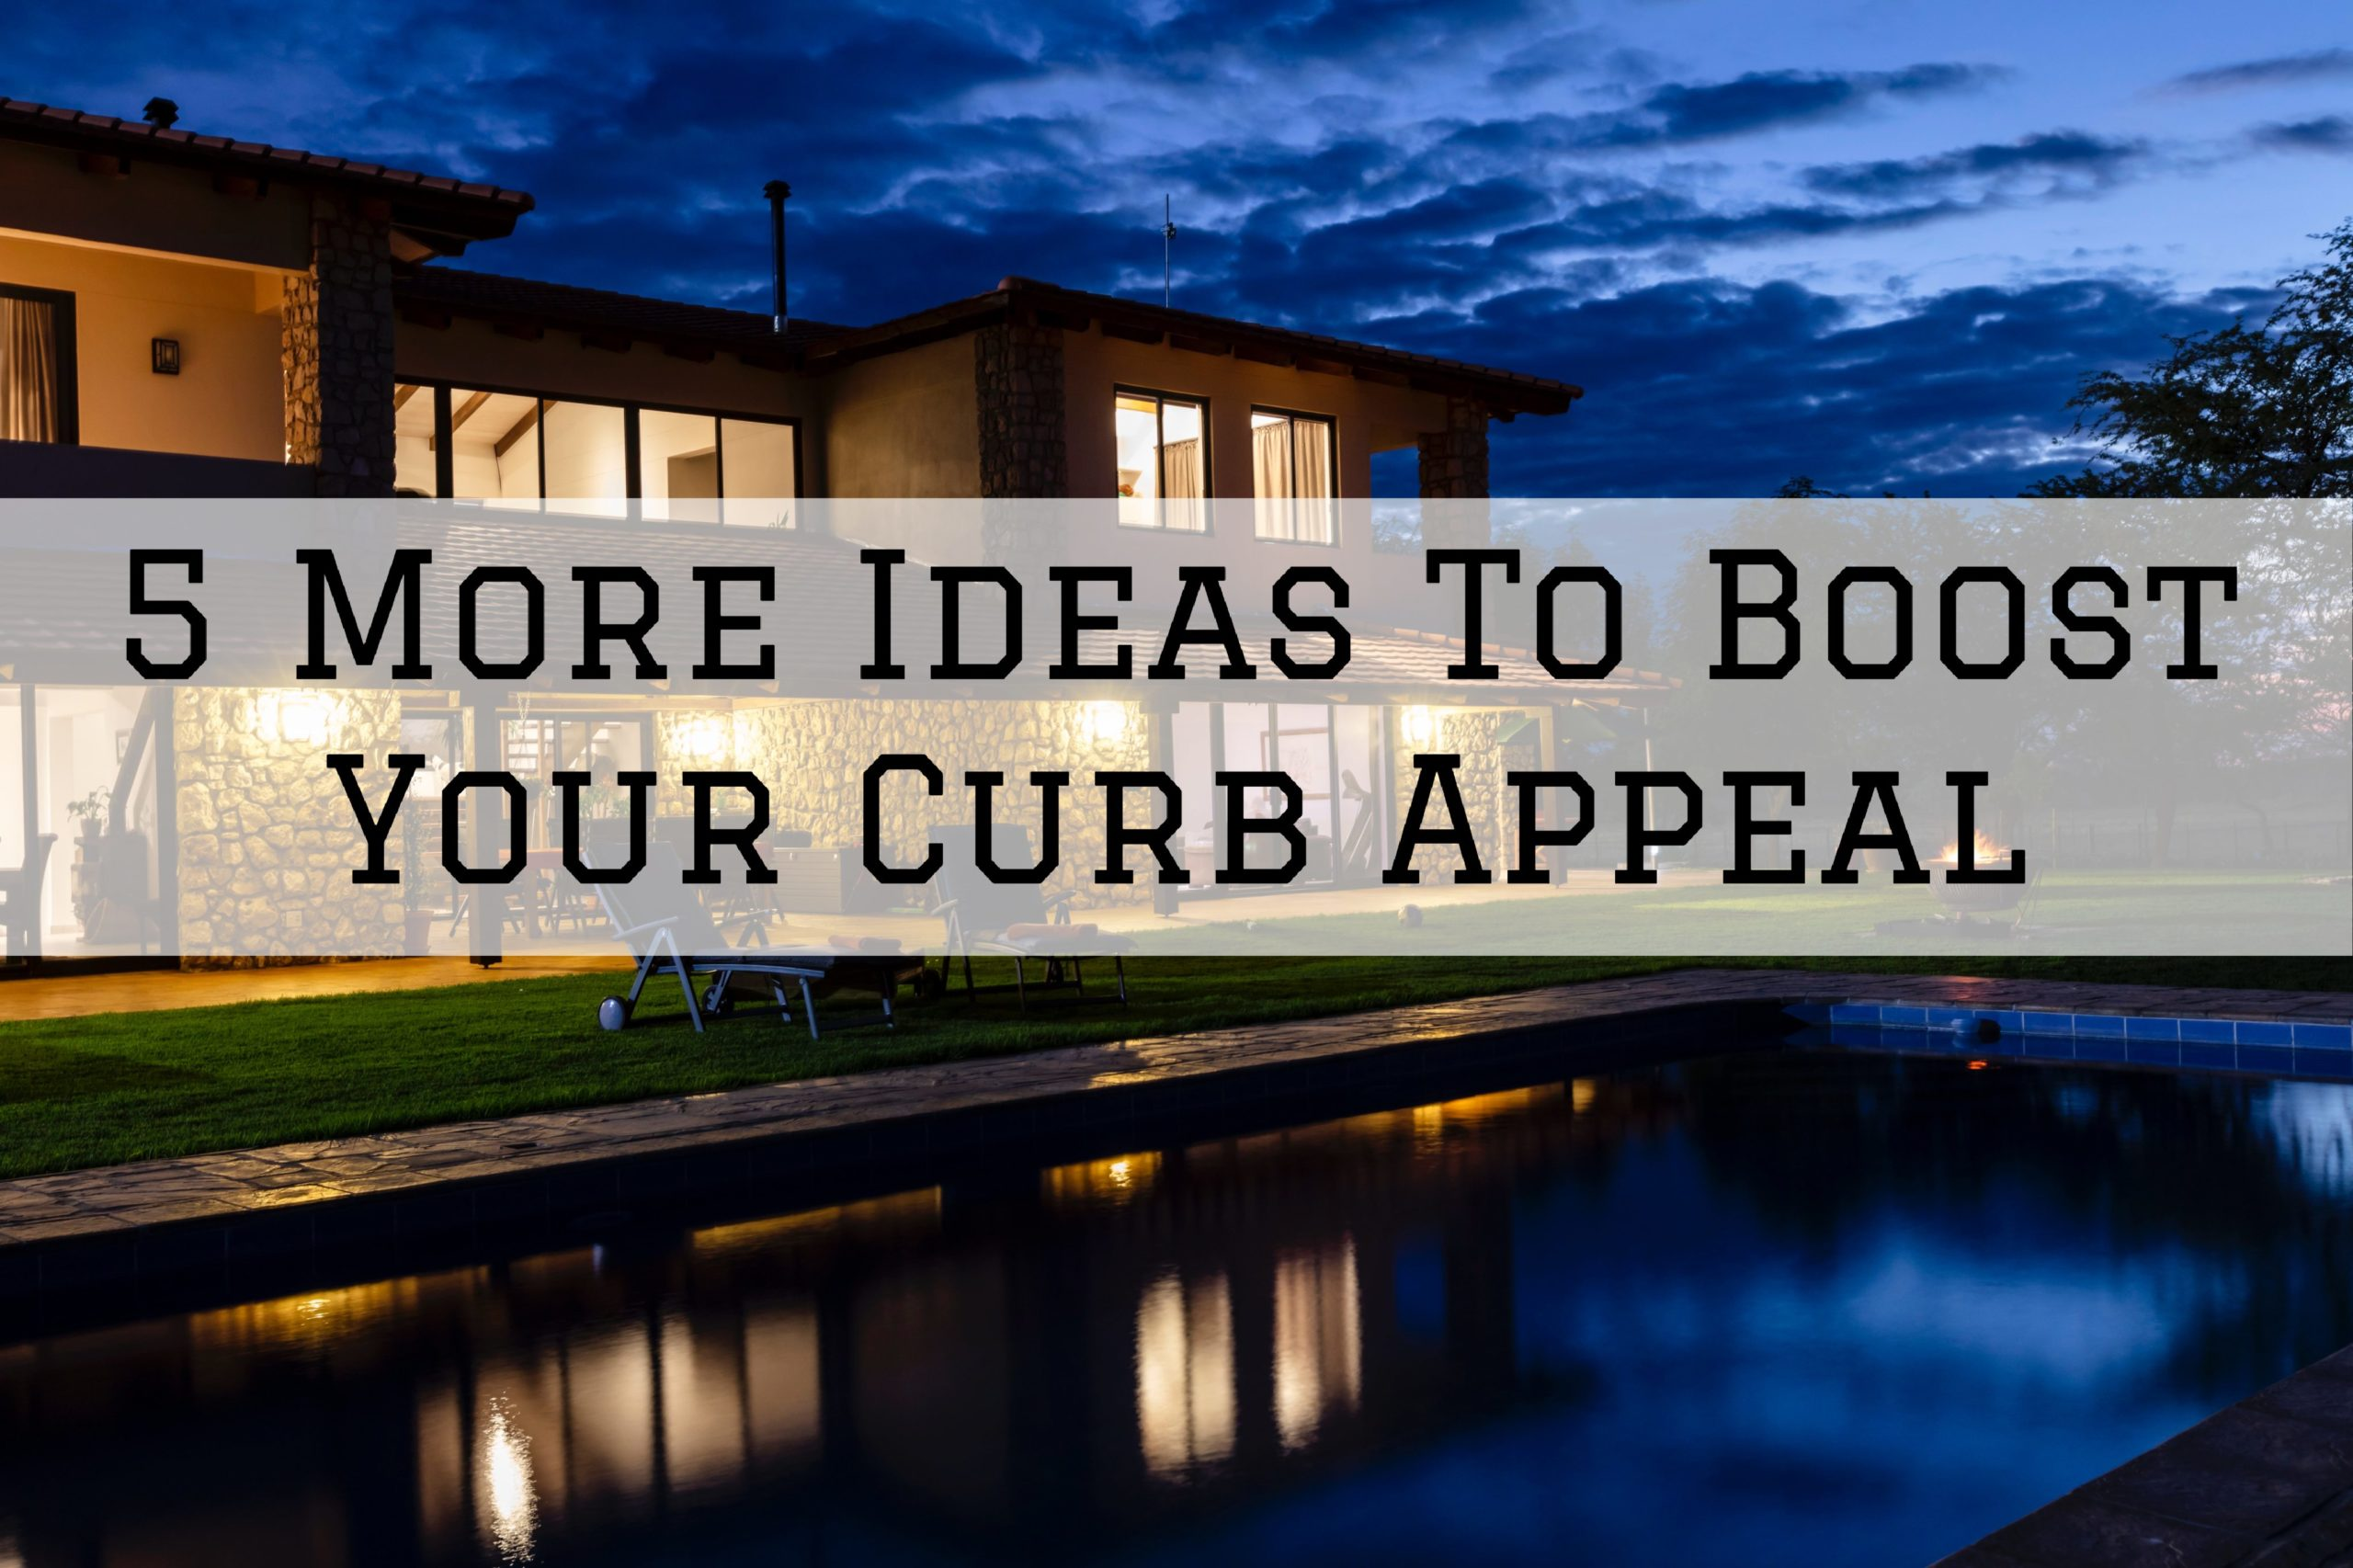 5 More Ideas To Boost Your Curb Appeal in Omaha, NE